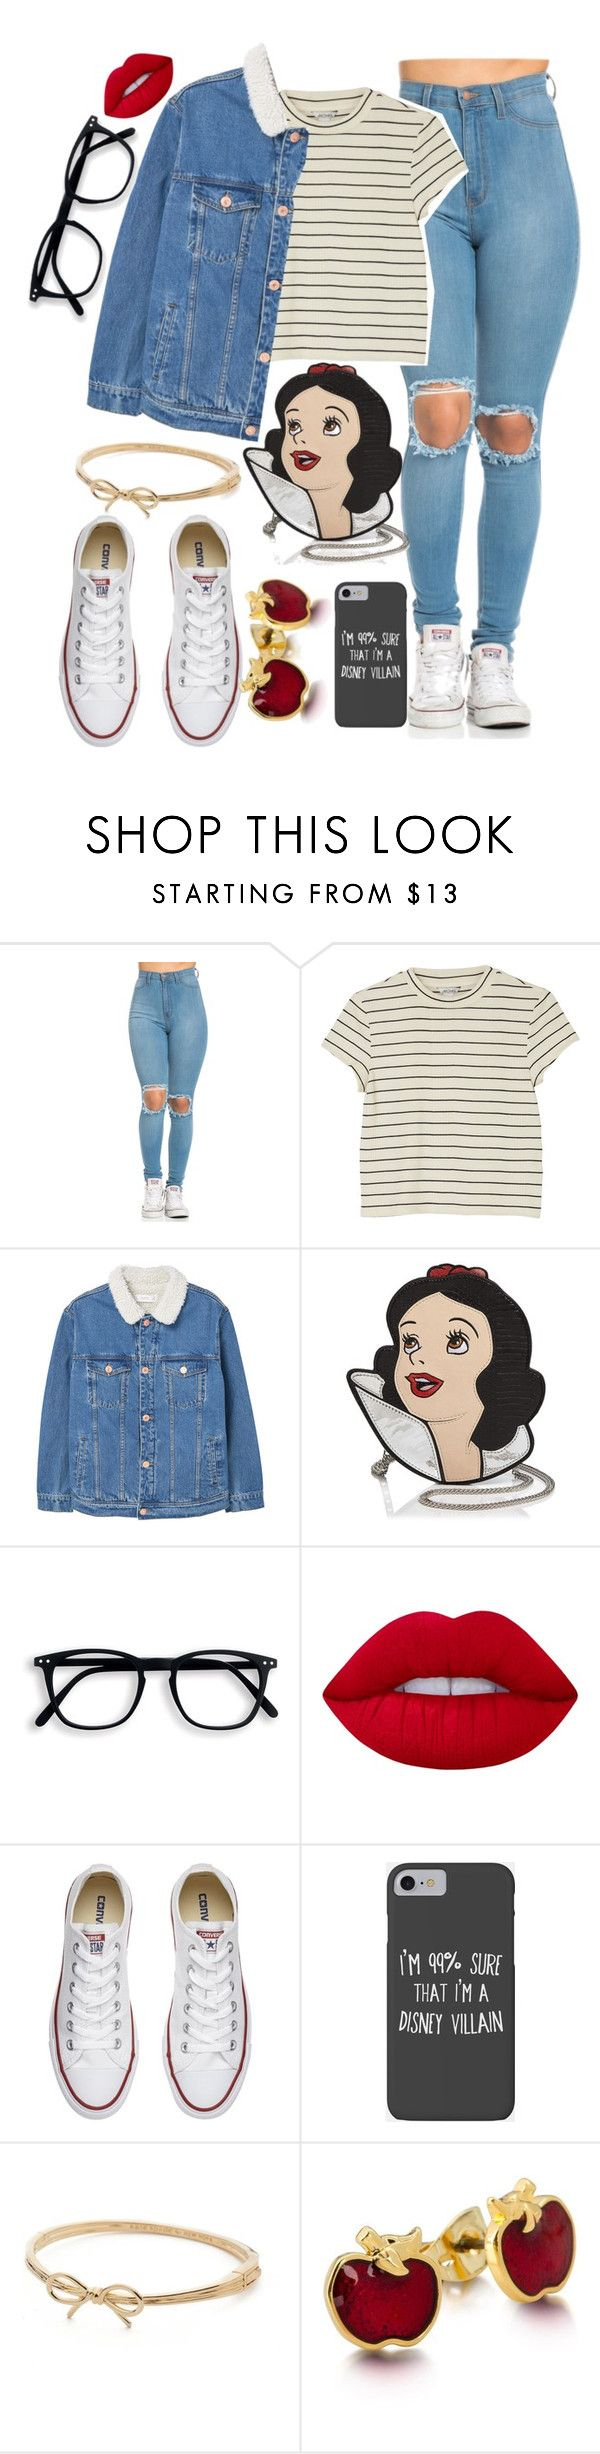 """""""OOTD"""" by iamrosyrosalie on Polyvore featuring Monki, MANGO, Danielle Nicole, Lime Crime, Converse, Disney and Kate Spade"""